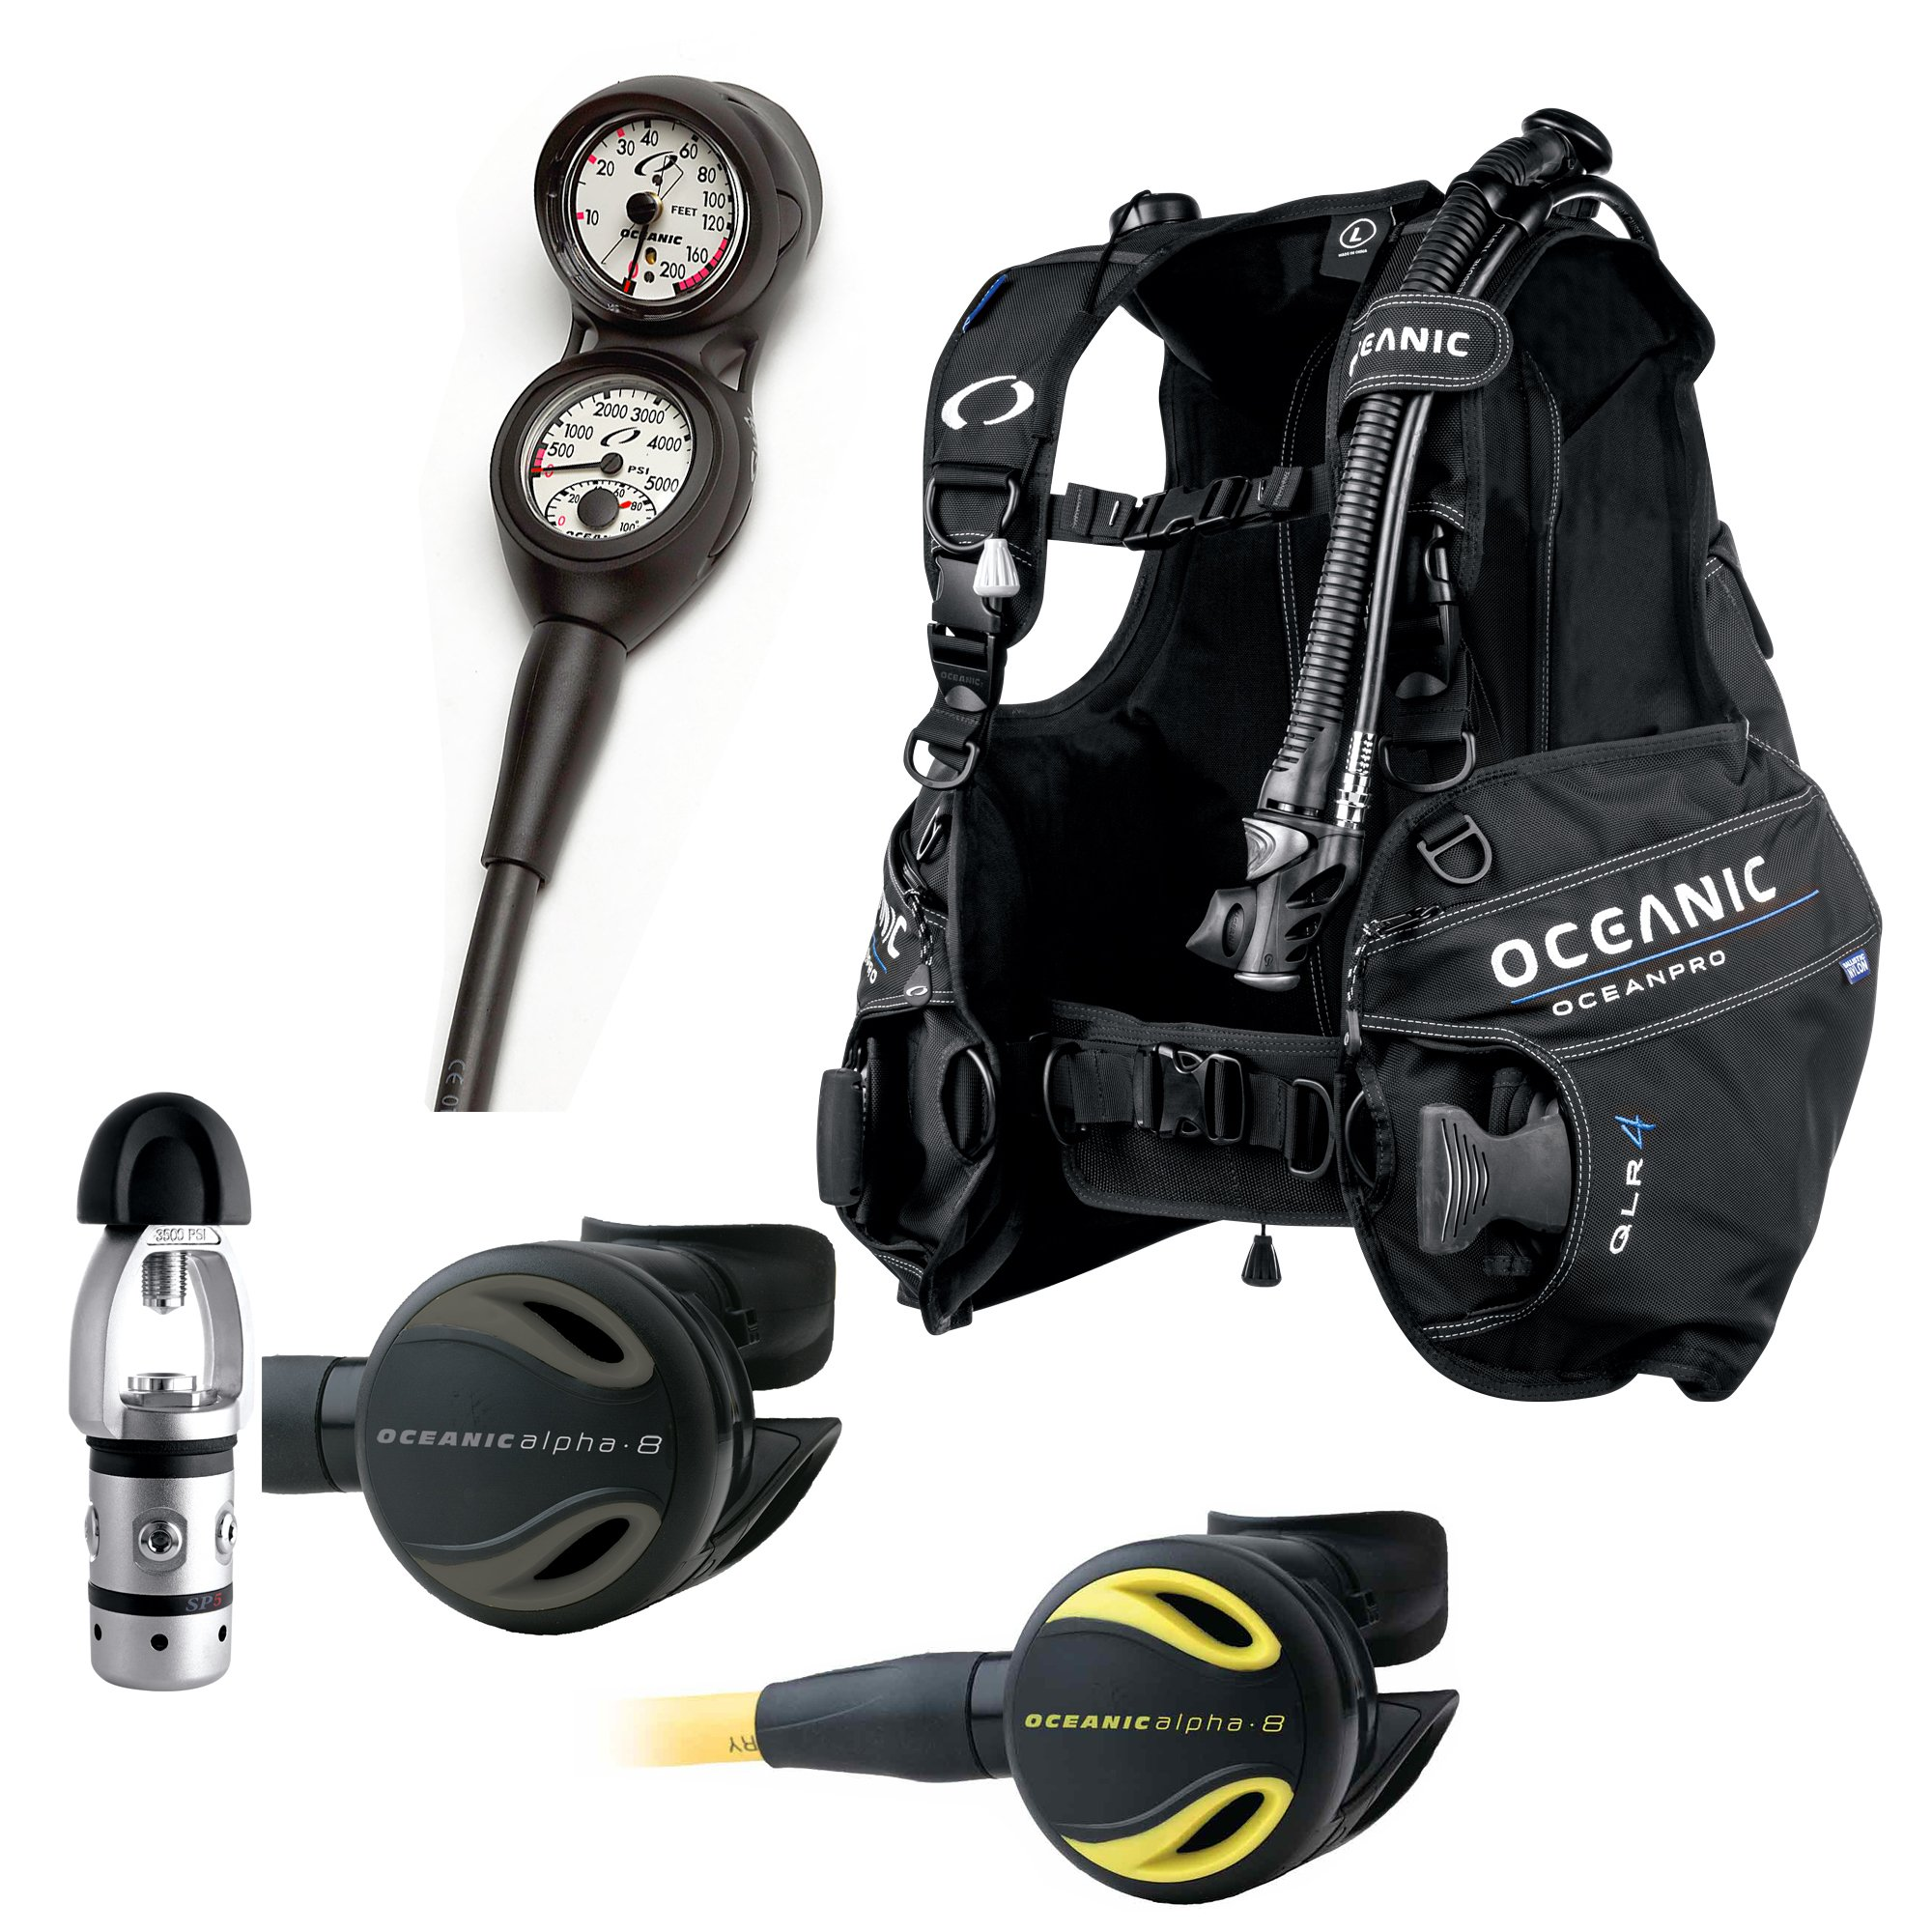 Oceanic Air XS 2 Alternate Inflator Octo Streamline Fit Octopus Hose and Set up Options for Scuba Diving Dive Gear BCD Inflator Authorized Dealer Full Warranty